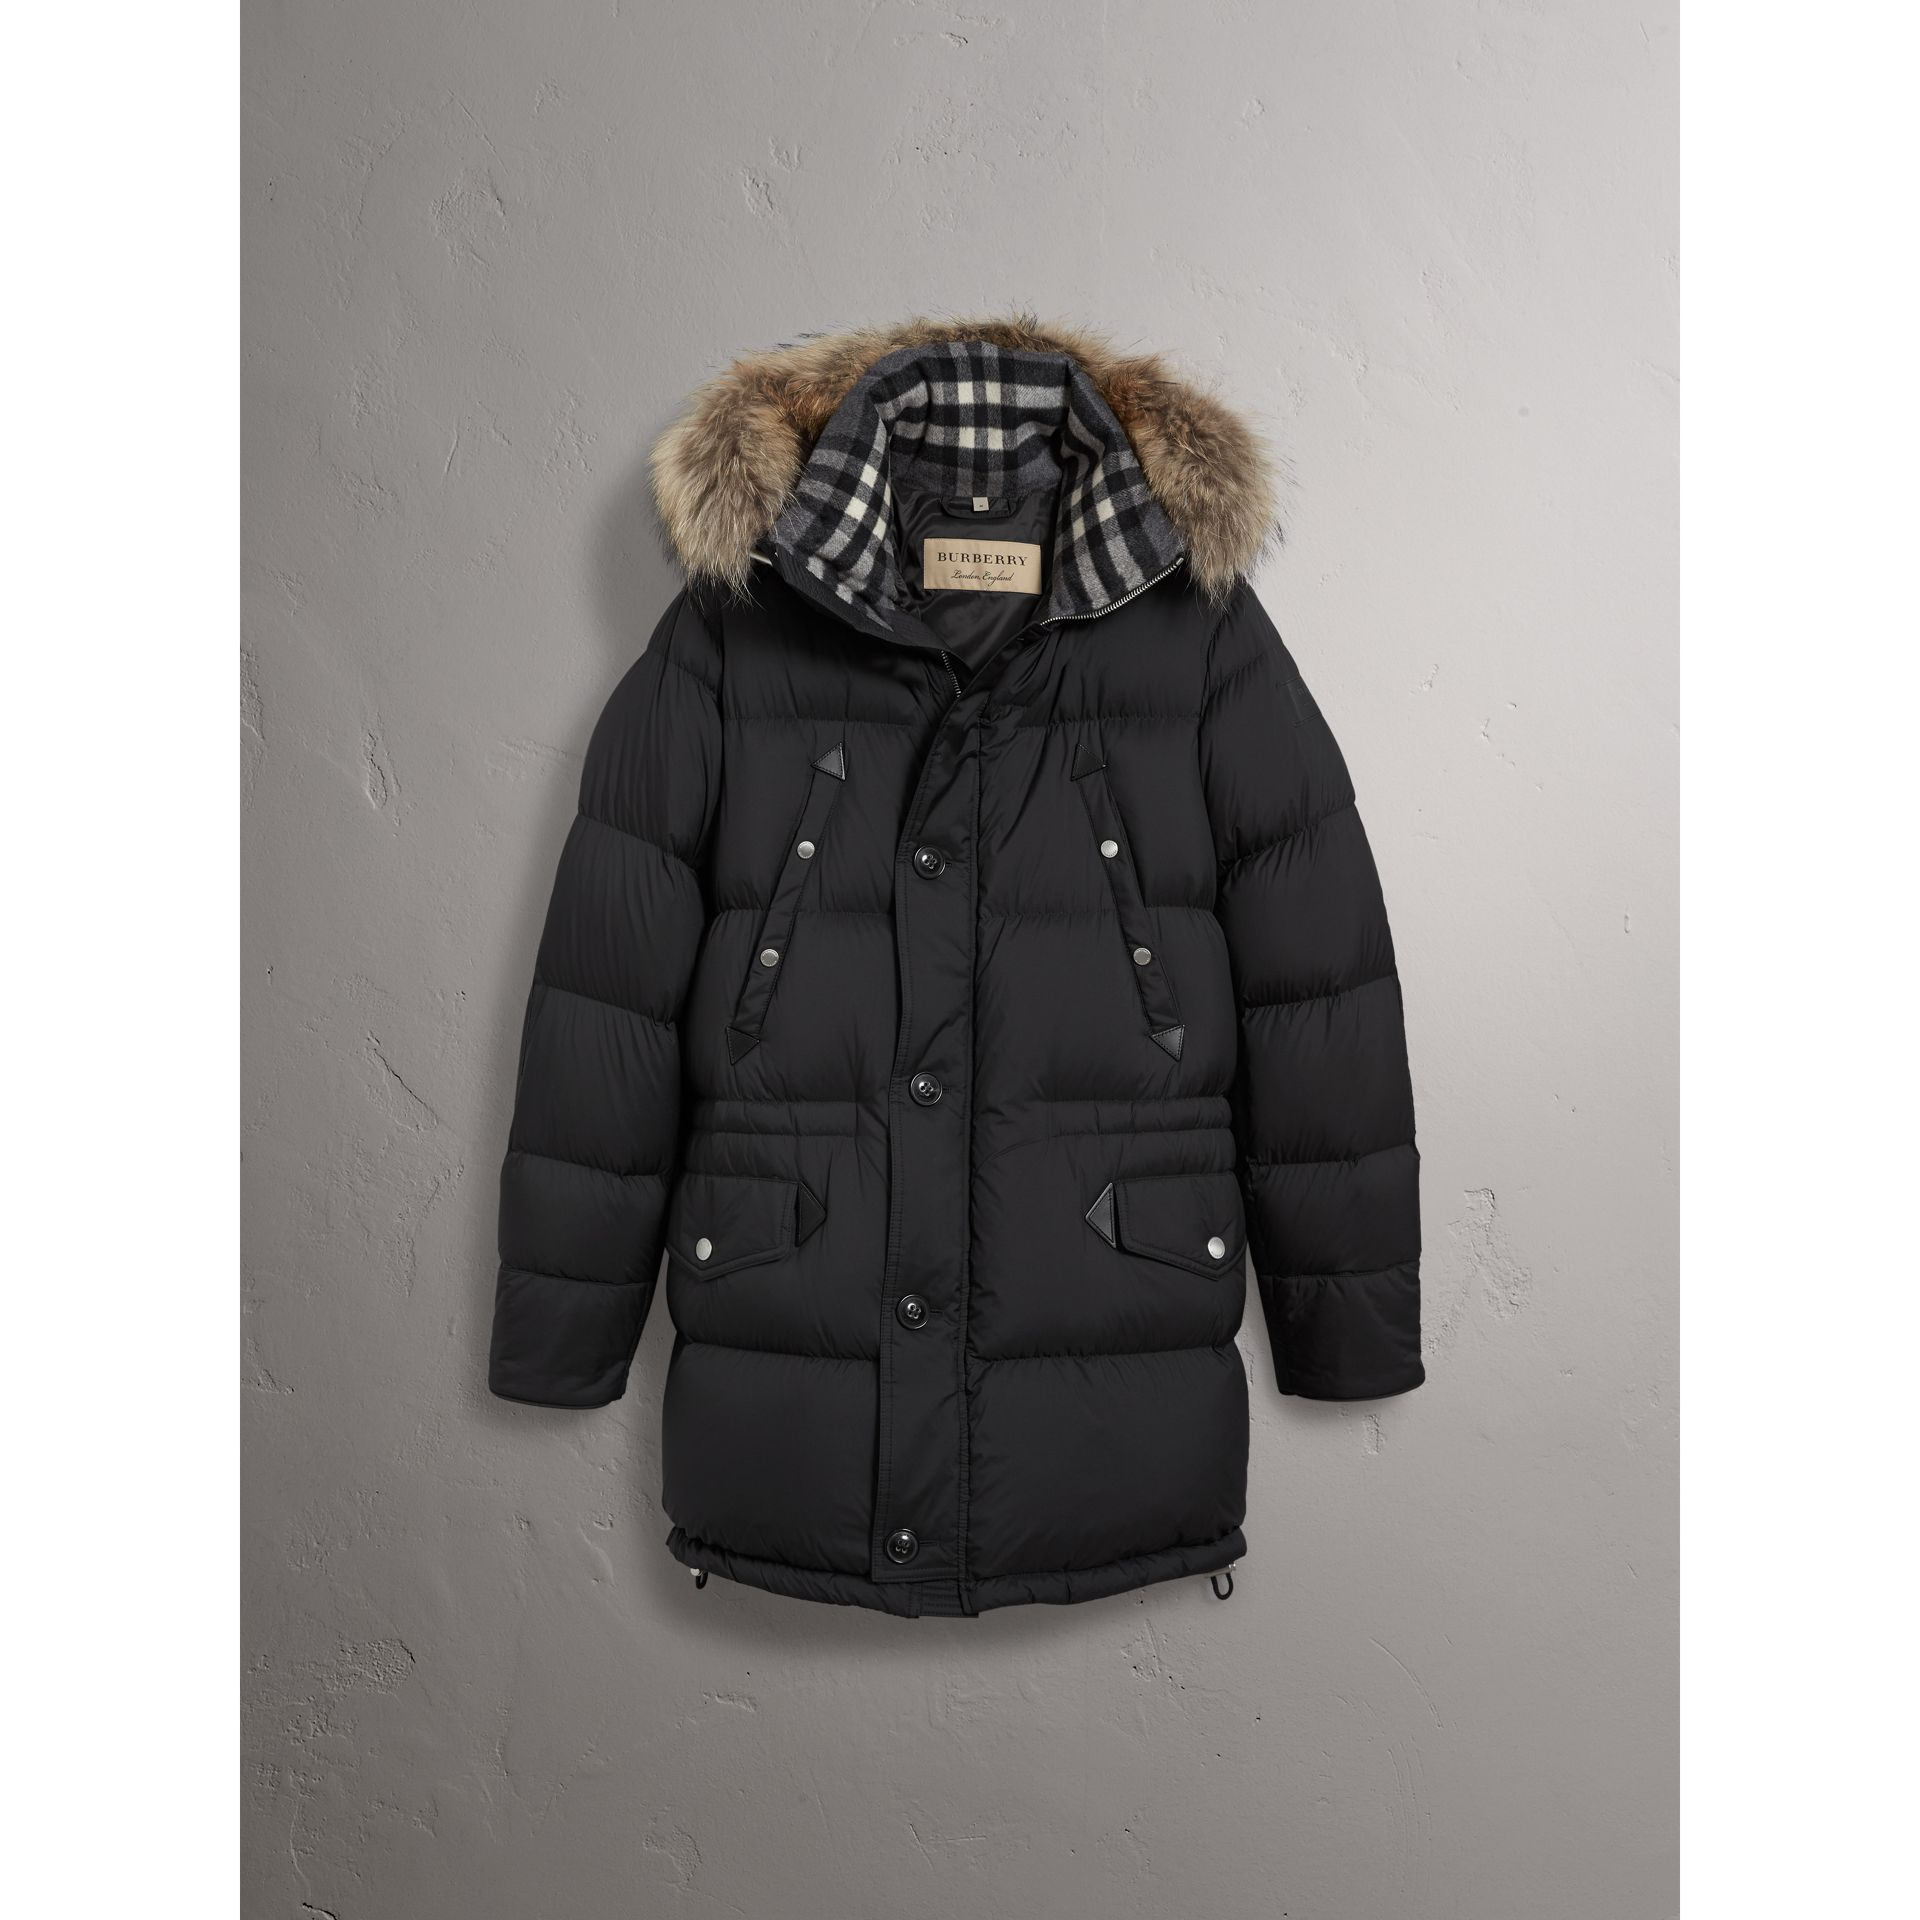 7427741c3 Detachable Raccoon Fur Trim Hood Down-filled Parka by Burberry